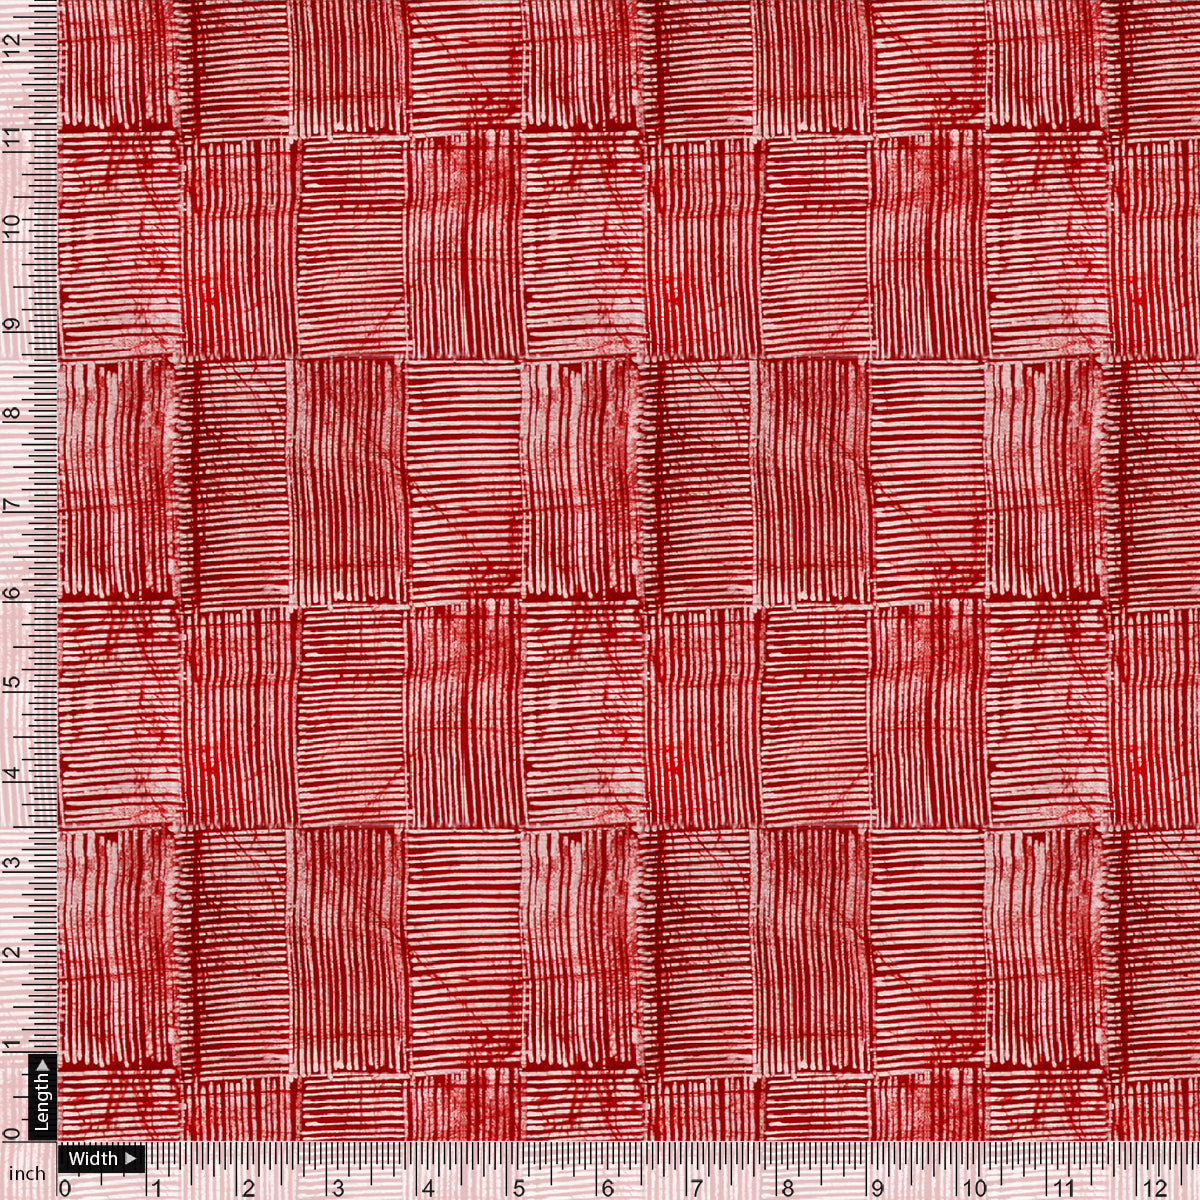 Checkes Textured Red And White Digital Printed Fabric